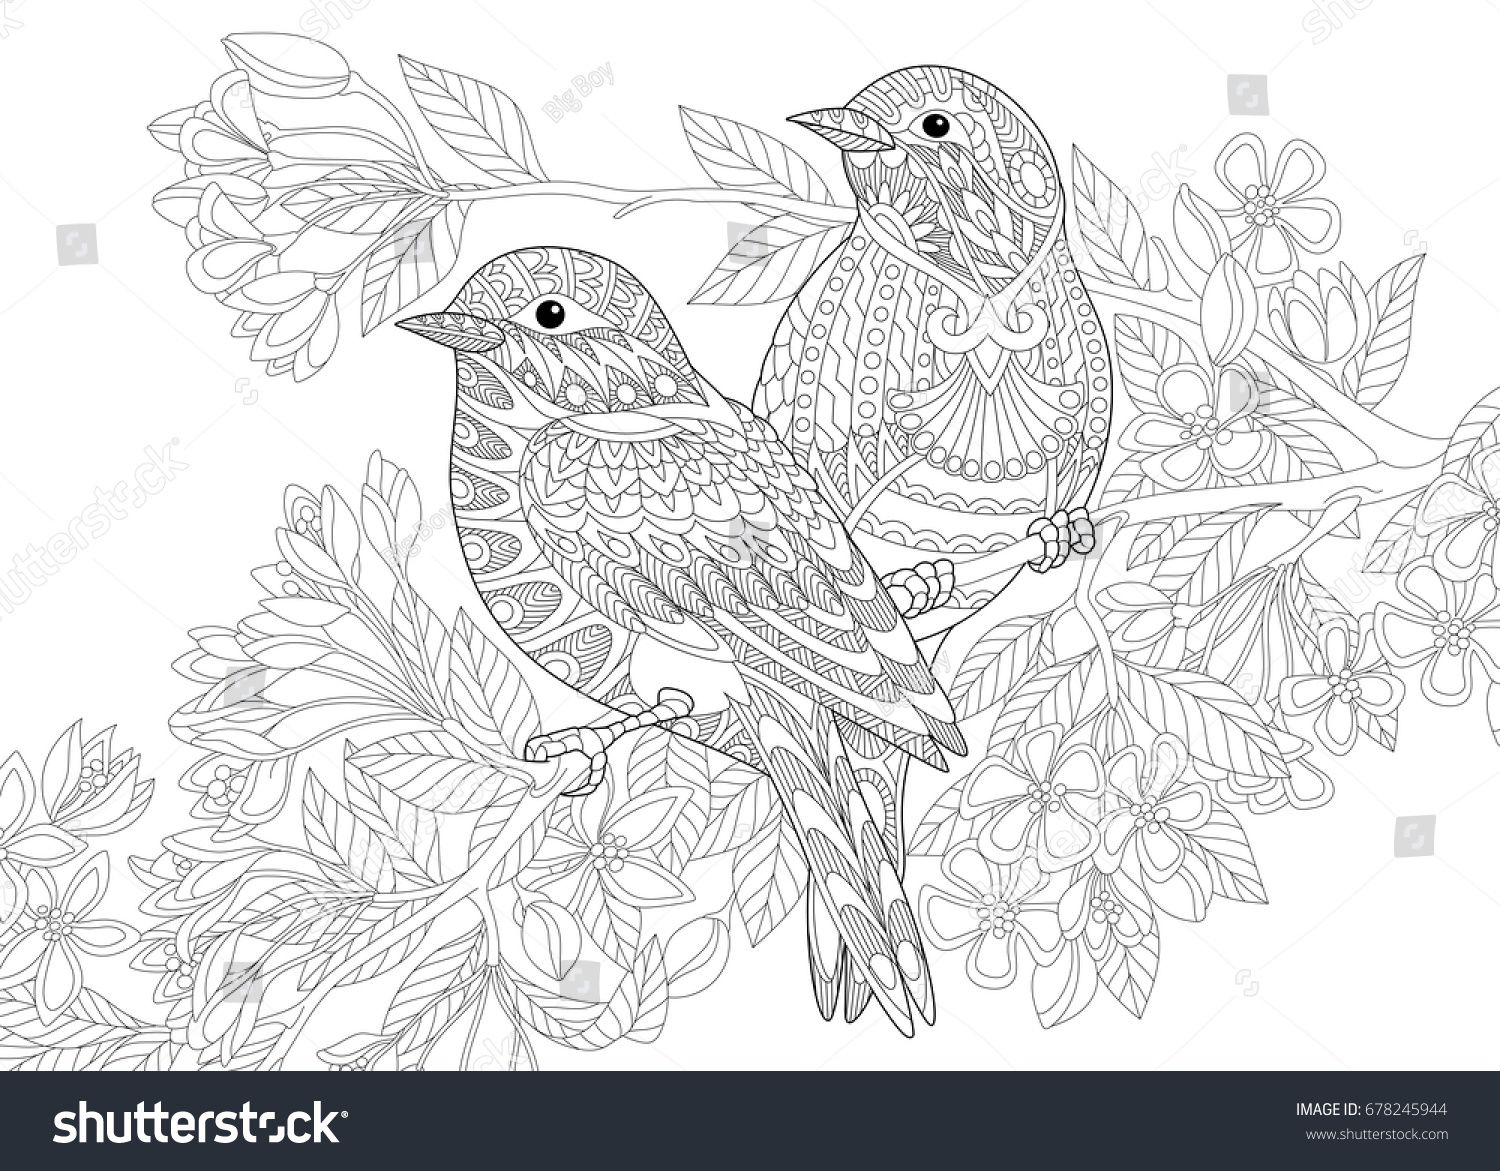 Zentangle Bird Coloring Pages Images